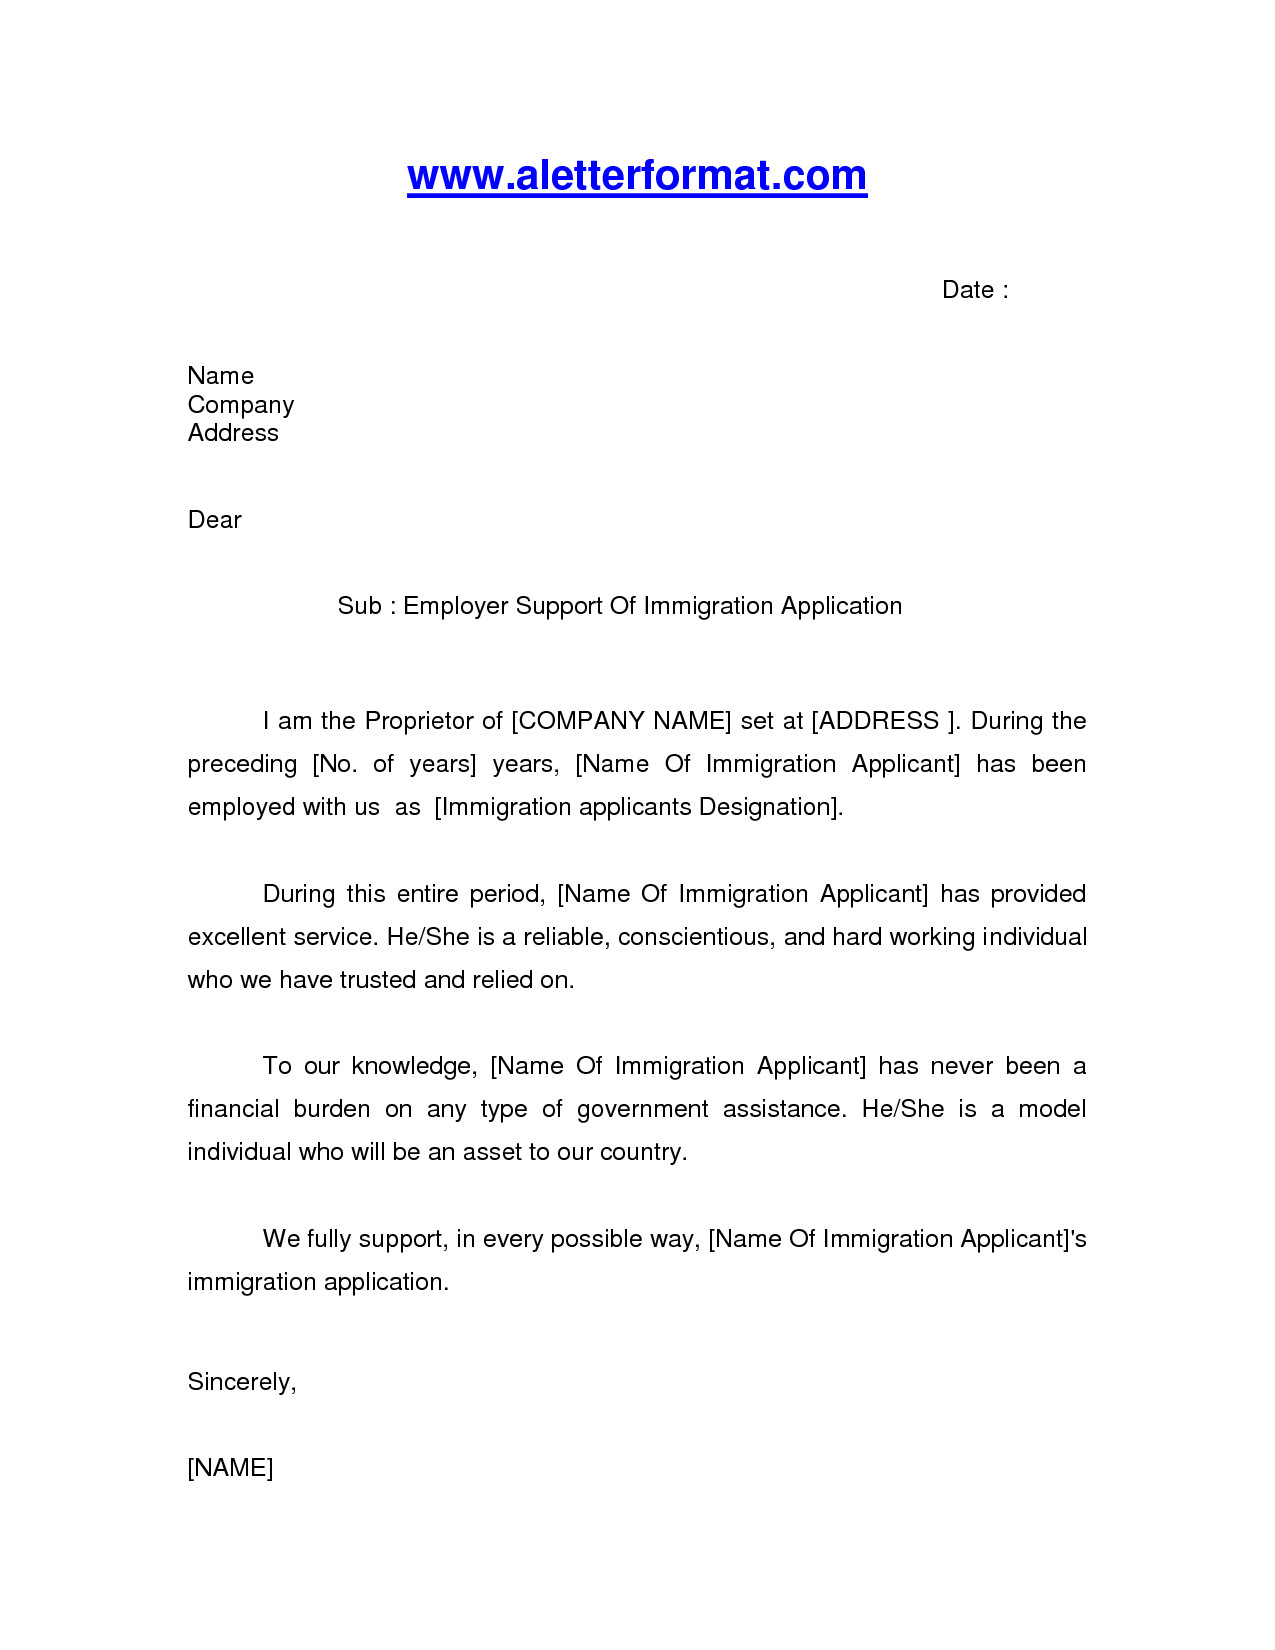 Character Letter for Immigration Immigration Letter Sample Google Search